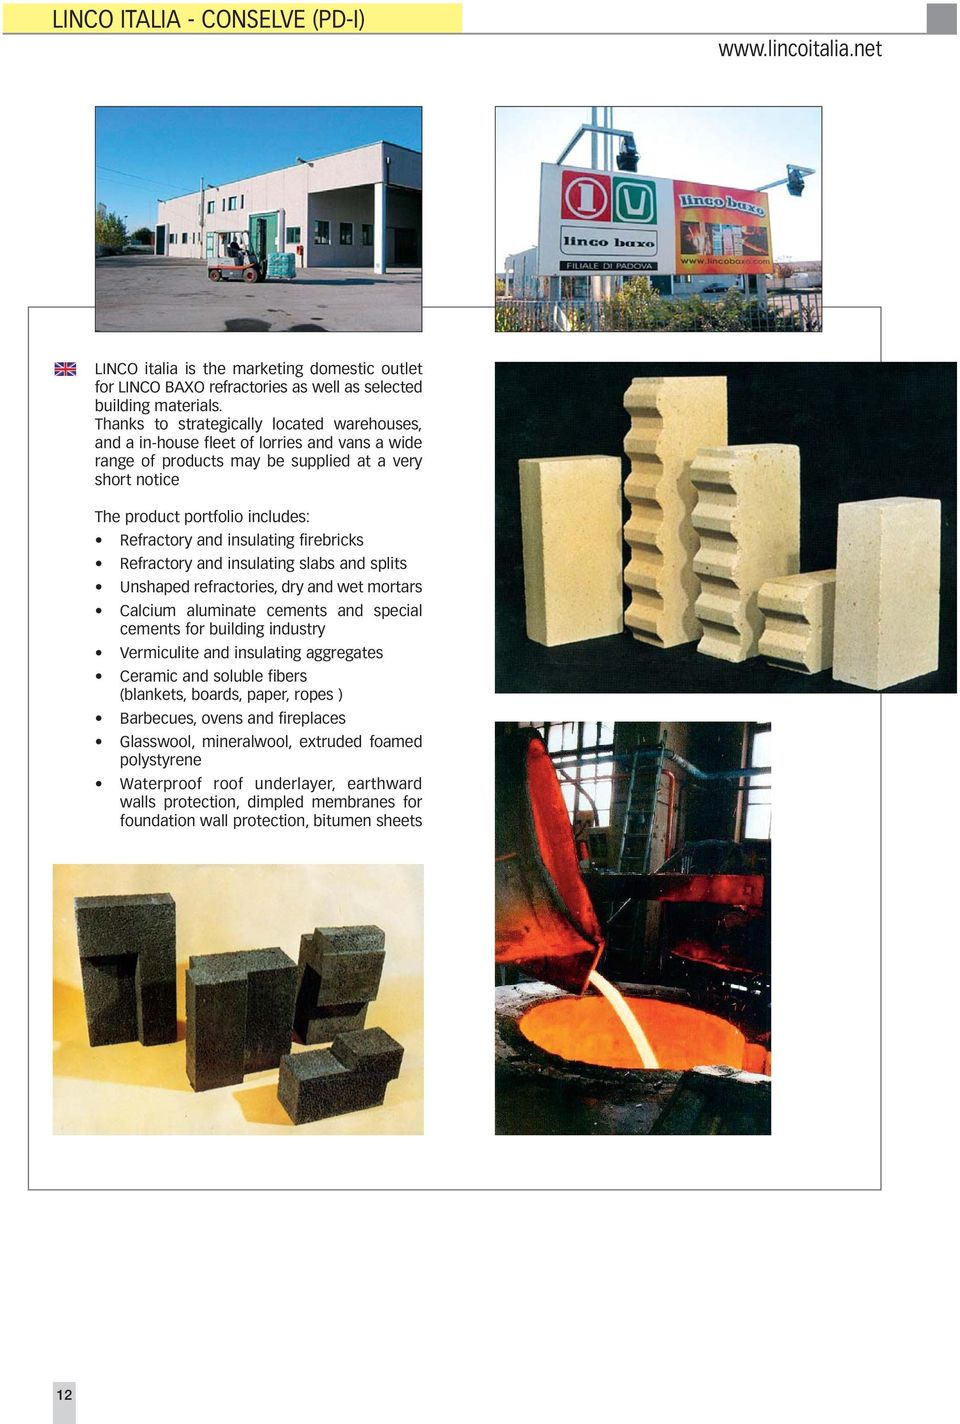 insulating firebricks Refractory and insulating slabs and splits Unshaped refractories, dry and wet mortars Calcium aluminate cements and special cements for building industry Vermiculite and